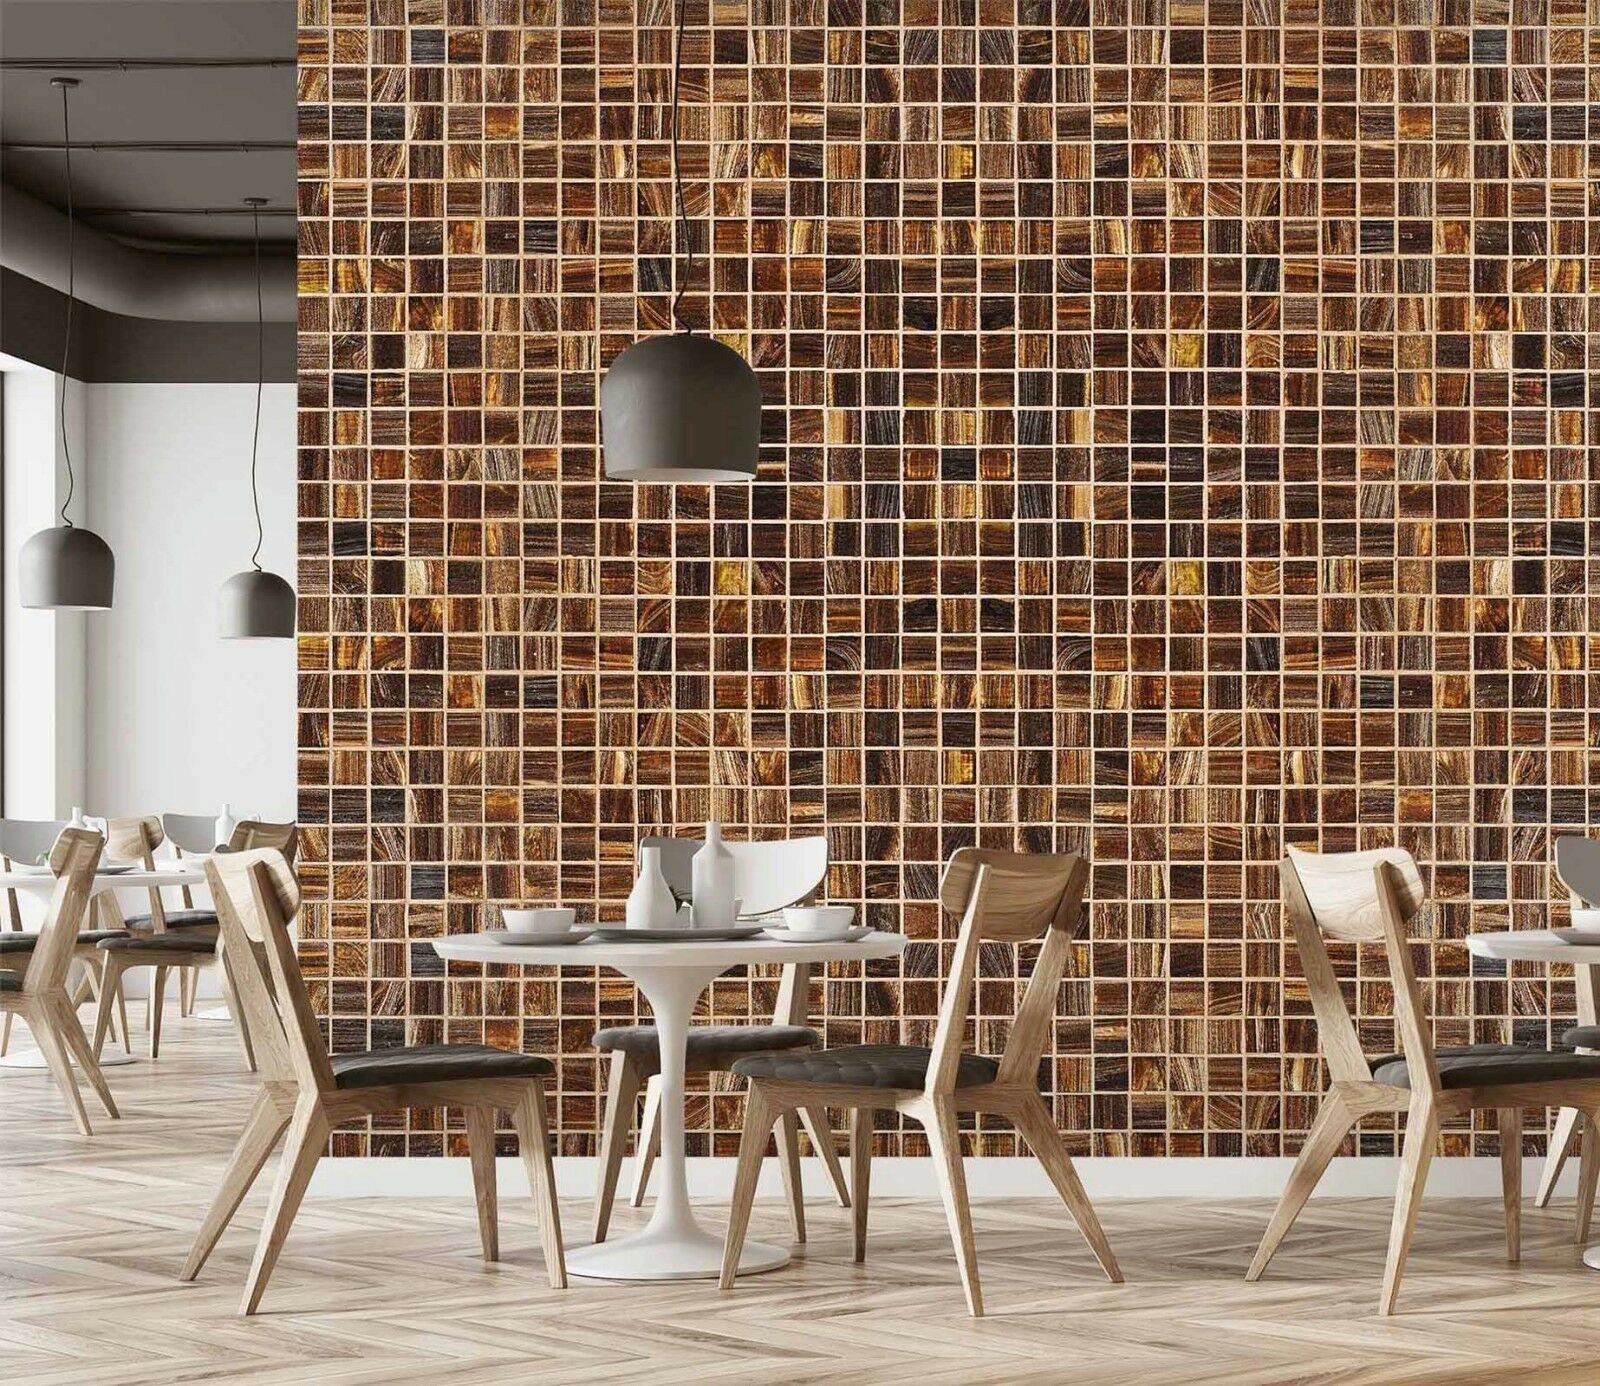 3D Brown Squares Lattice 1 Texture Tiles Marble Wall Paper Decal Wallpaper Mural